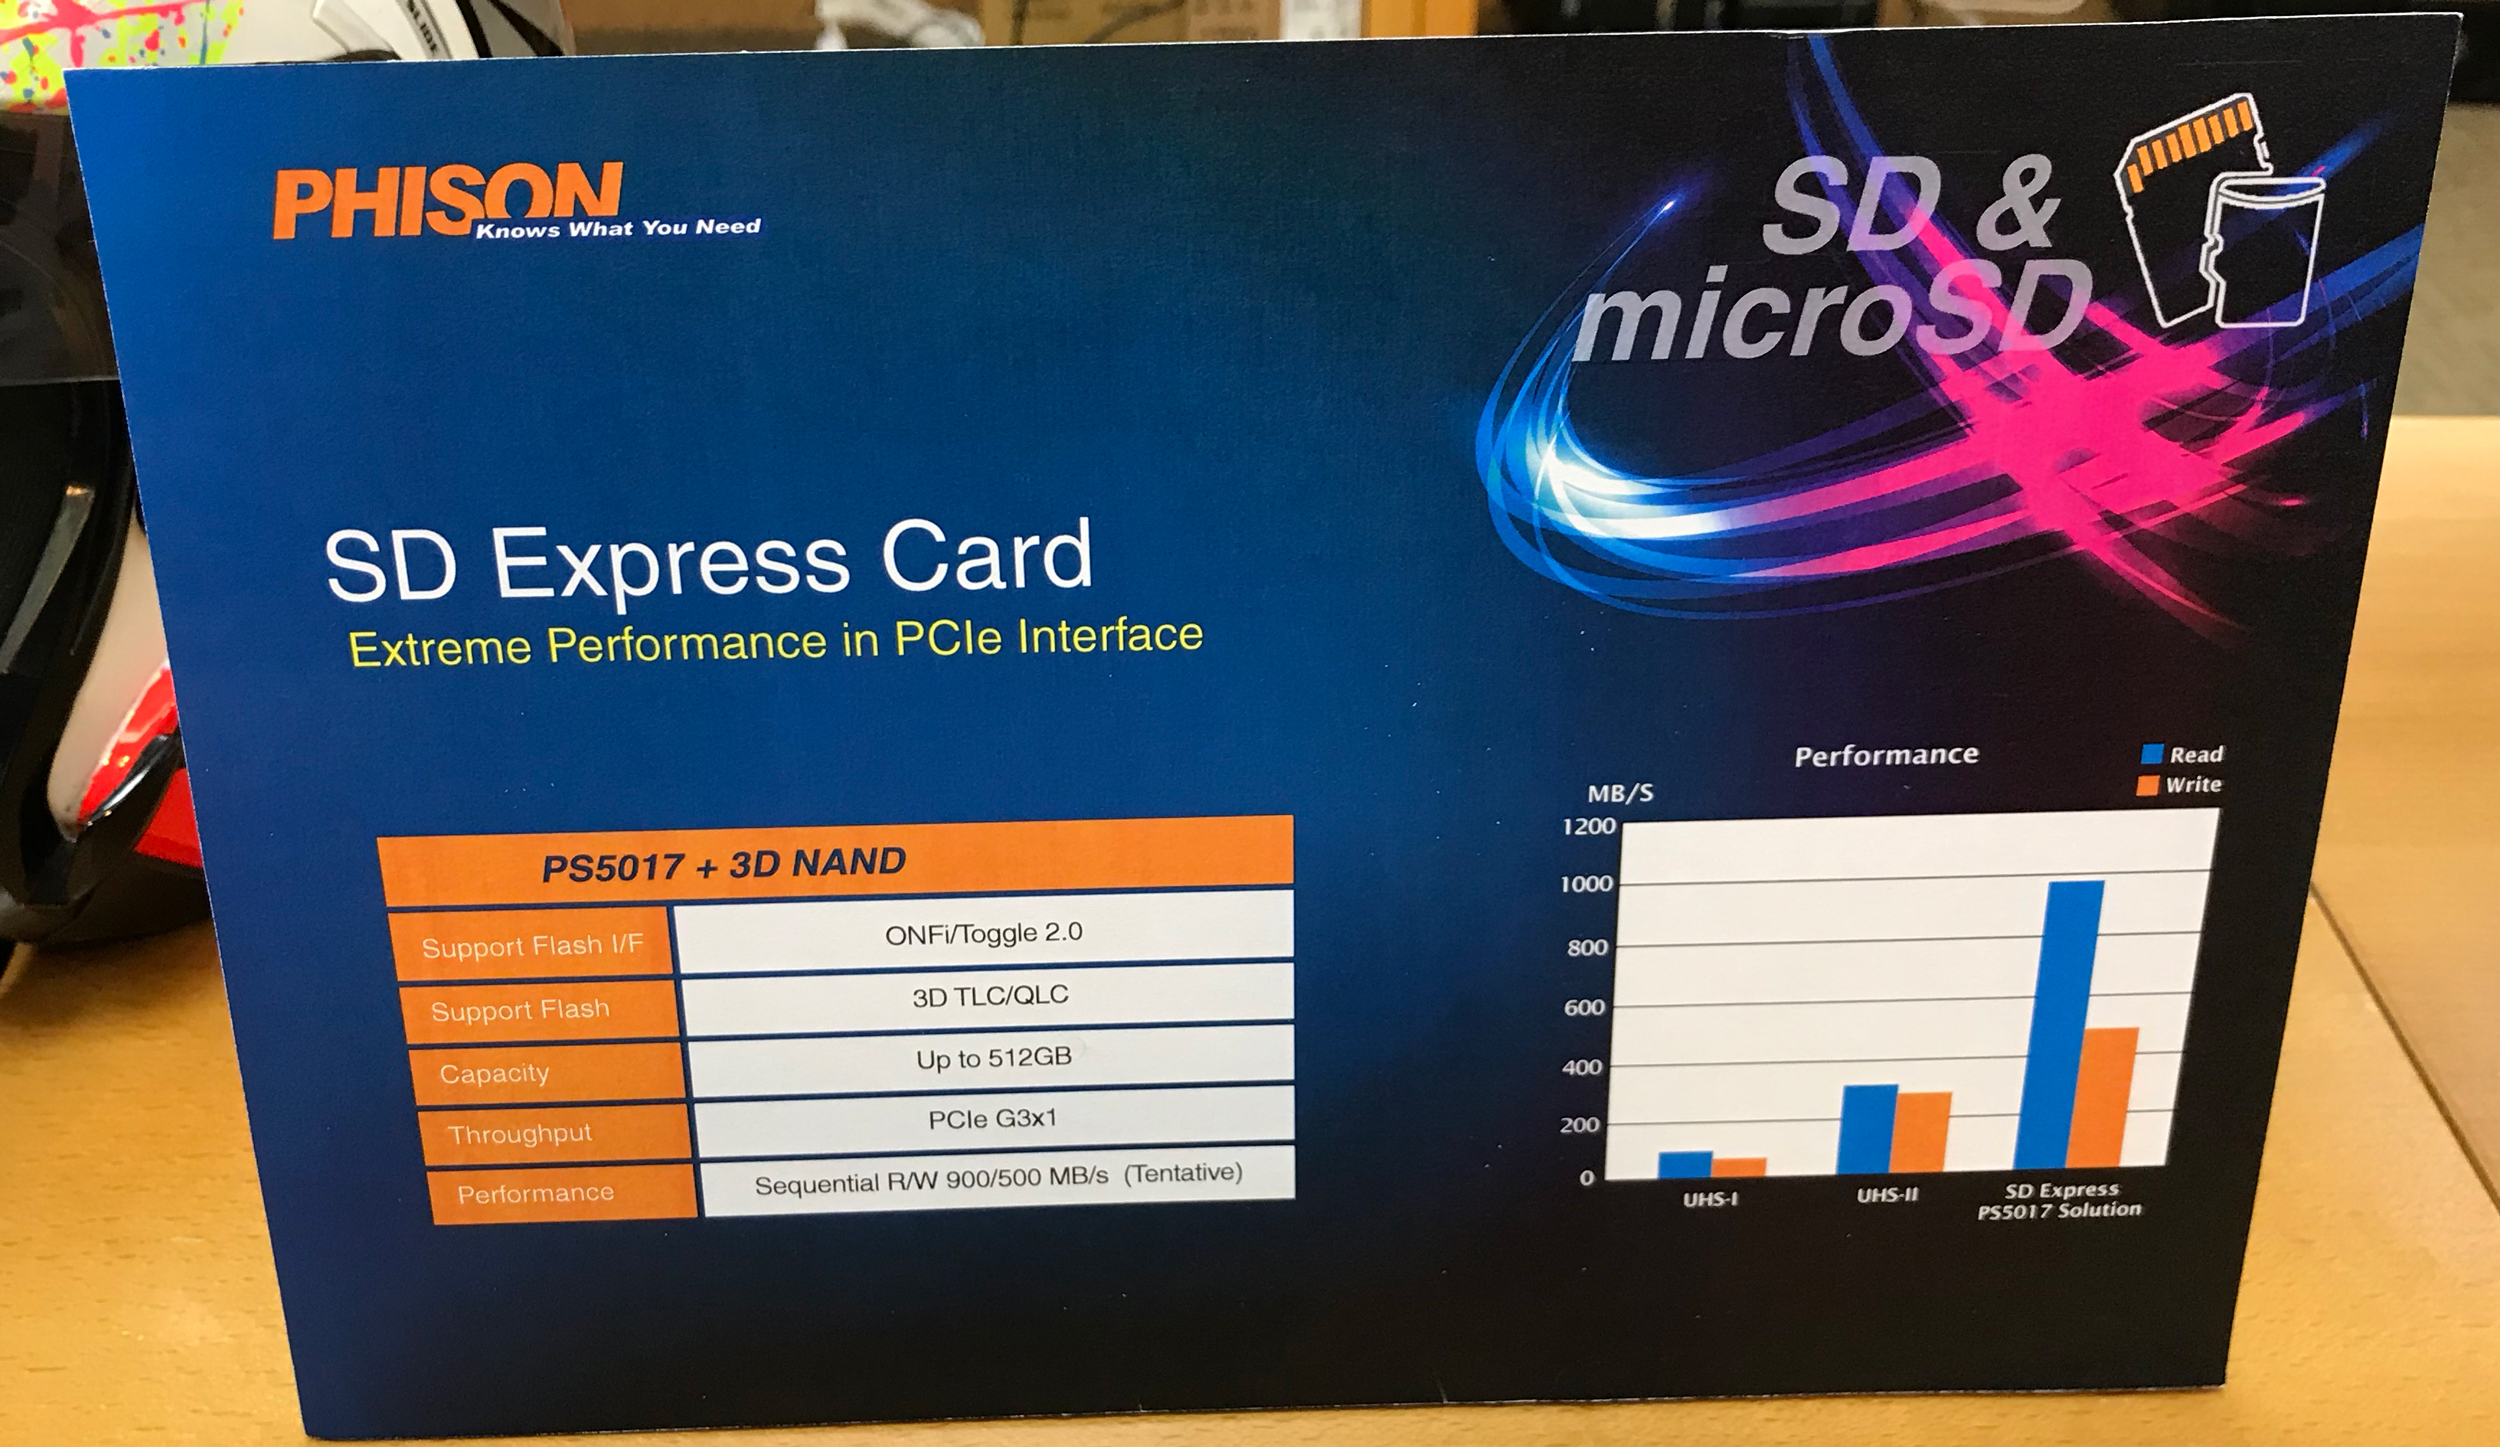 Phison Develops PS5017 Controller for SD Express & MicroSD